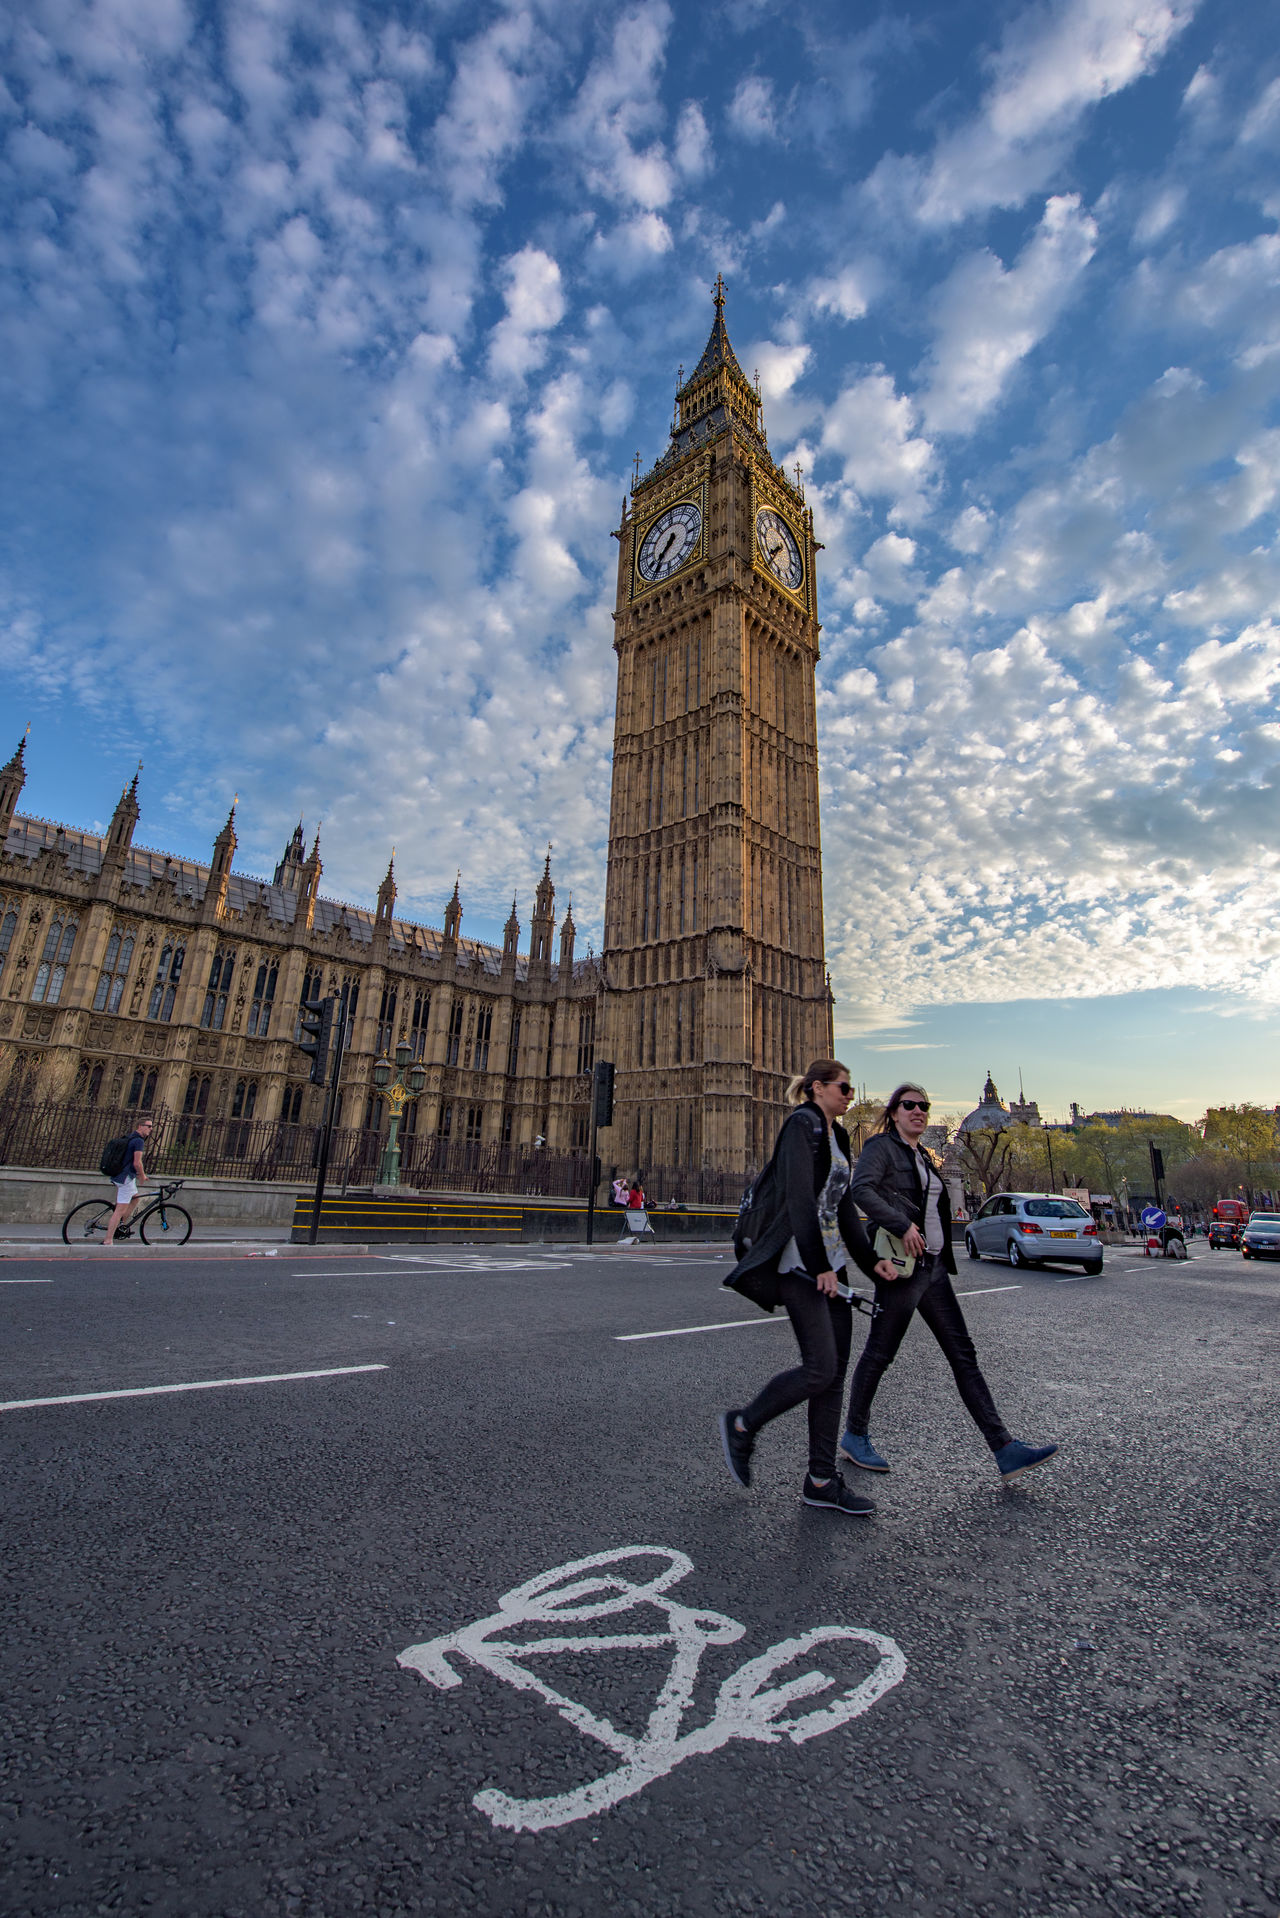 Crossing London streets Adult Adults Only Architecture Big Ben Building Exterior Built Structure Capital Clock Tower Cloud - Sky Clouds Cycling Day England Famous Building Full Frame London Outdoors People Real People Sky Standing Travel Destinations Westminster Women